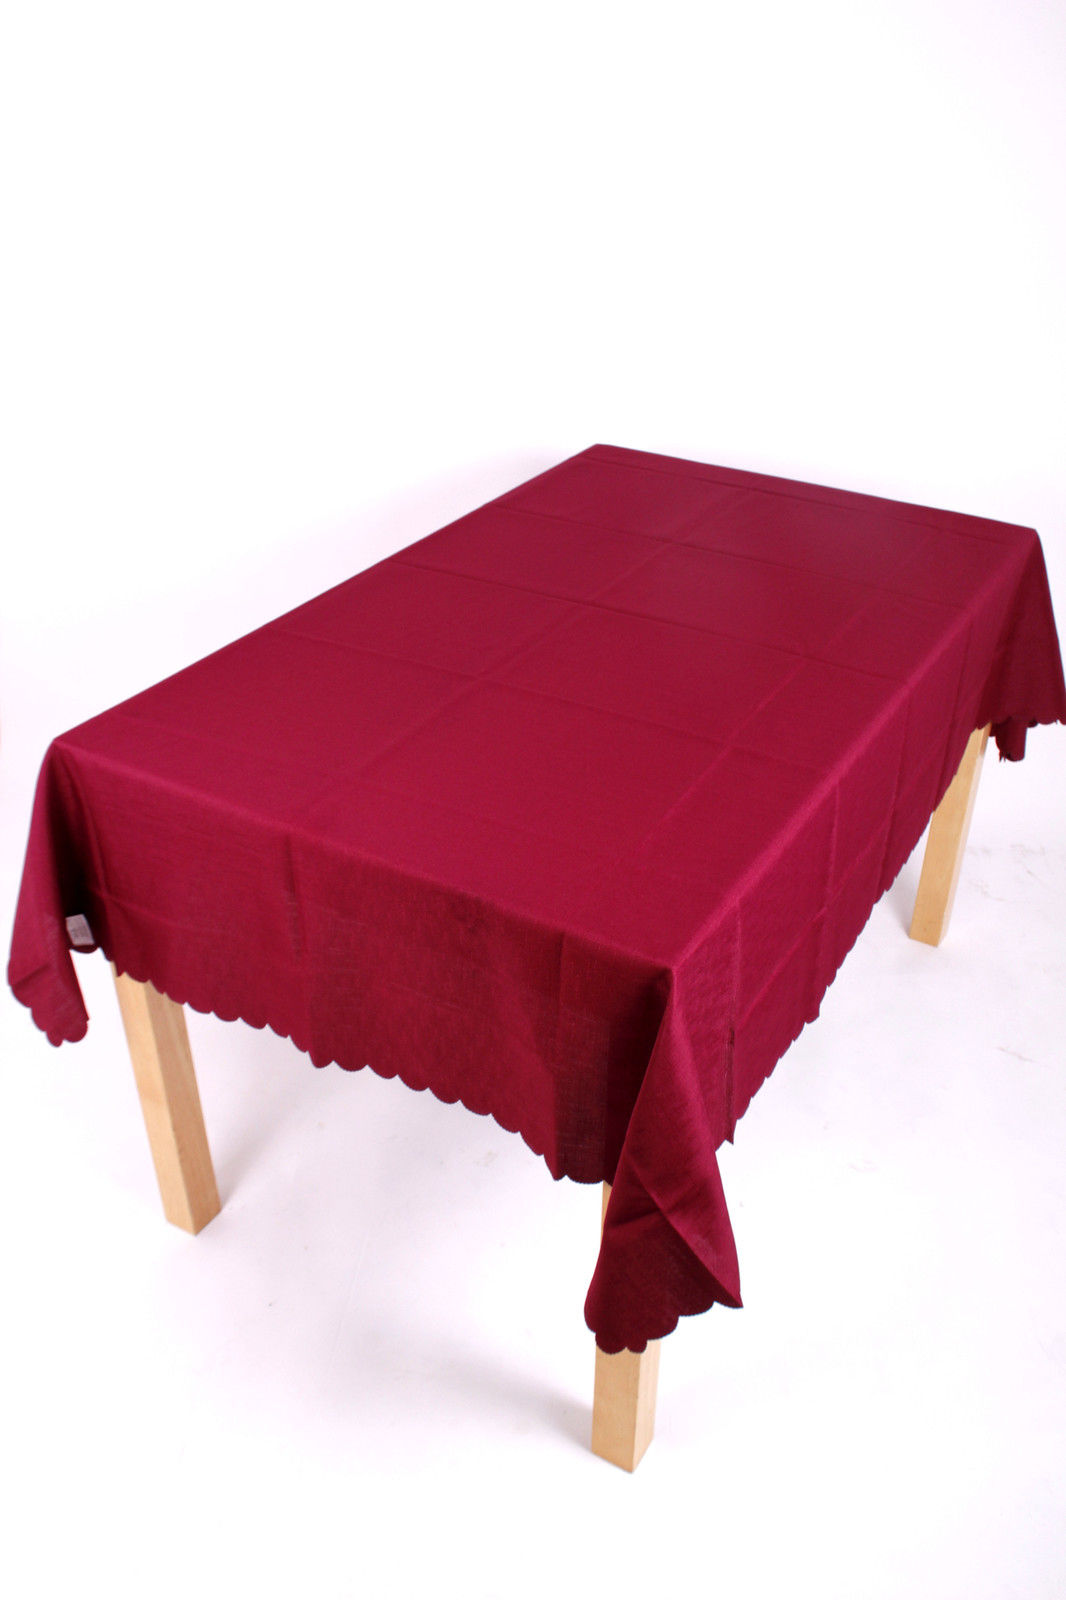 Shell Tablecloth Burgundy 91x91cm